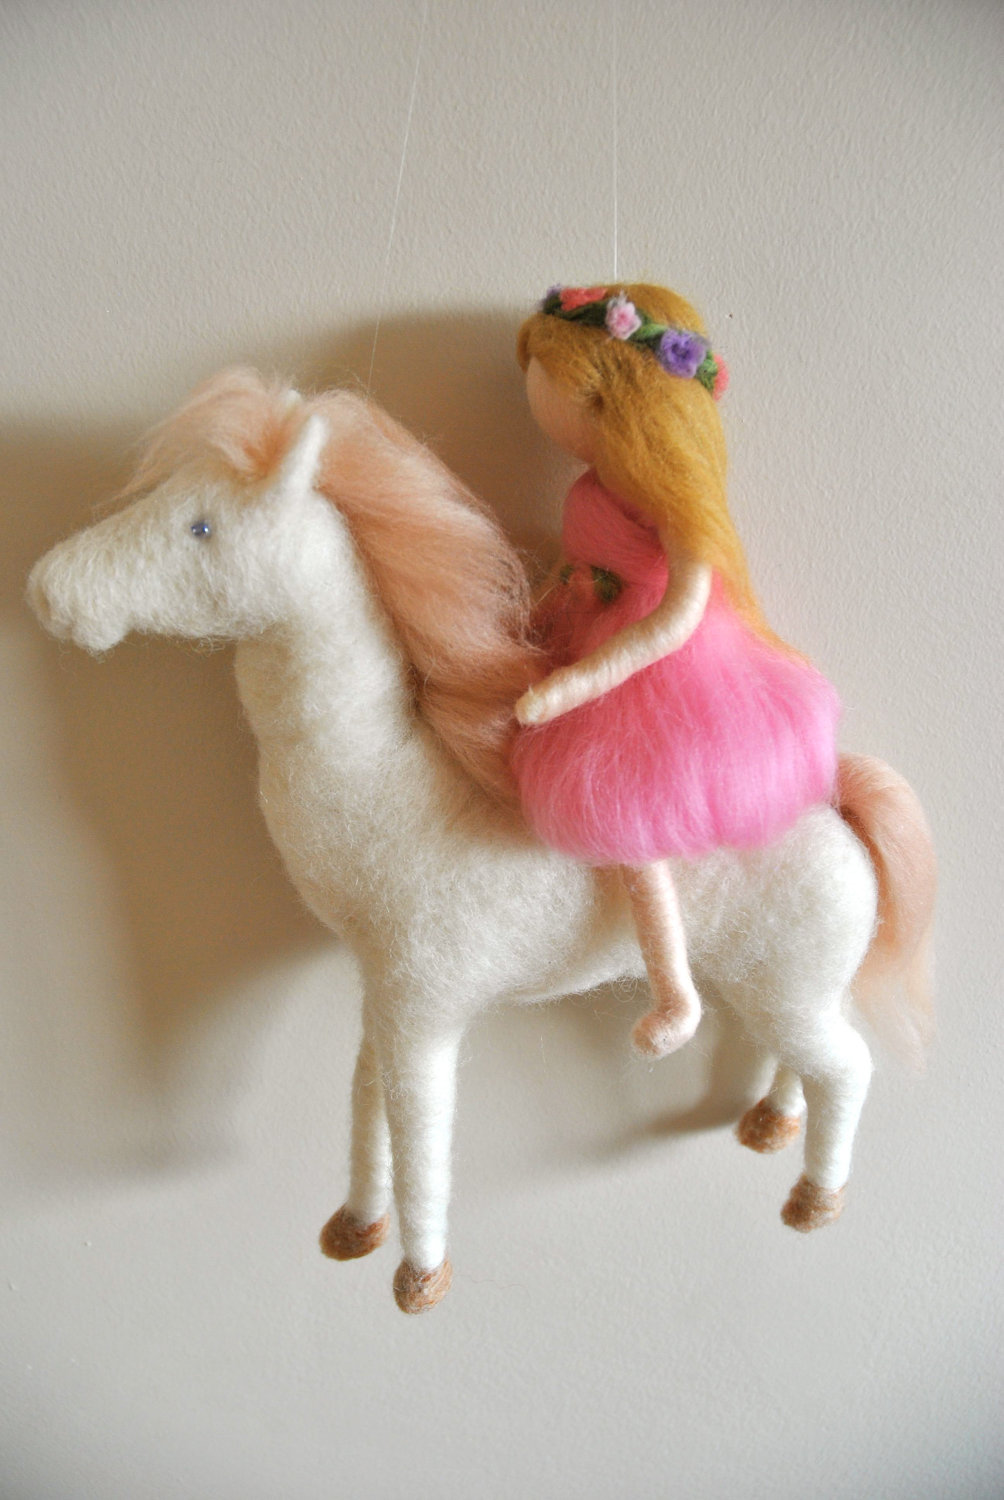 MagicWool Waldorf inspired needle felted doll mobile. The Girl in Pink and the White Horse on Etsy